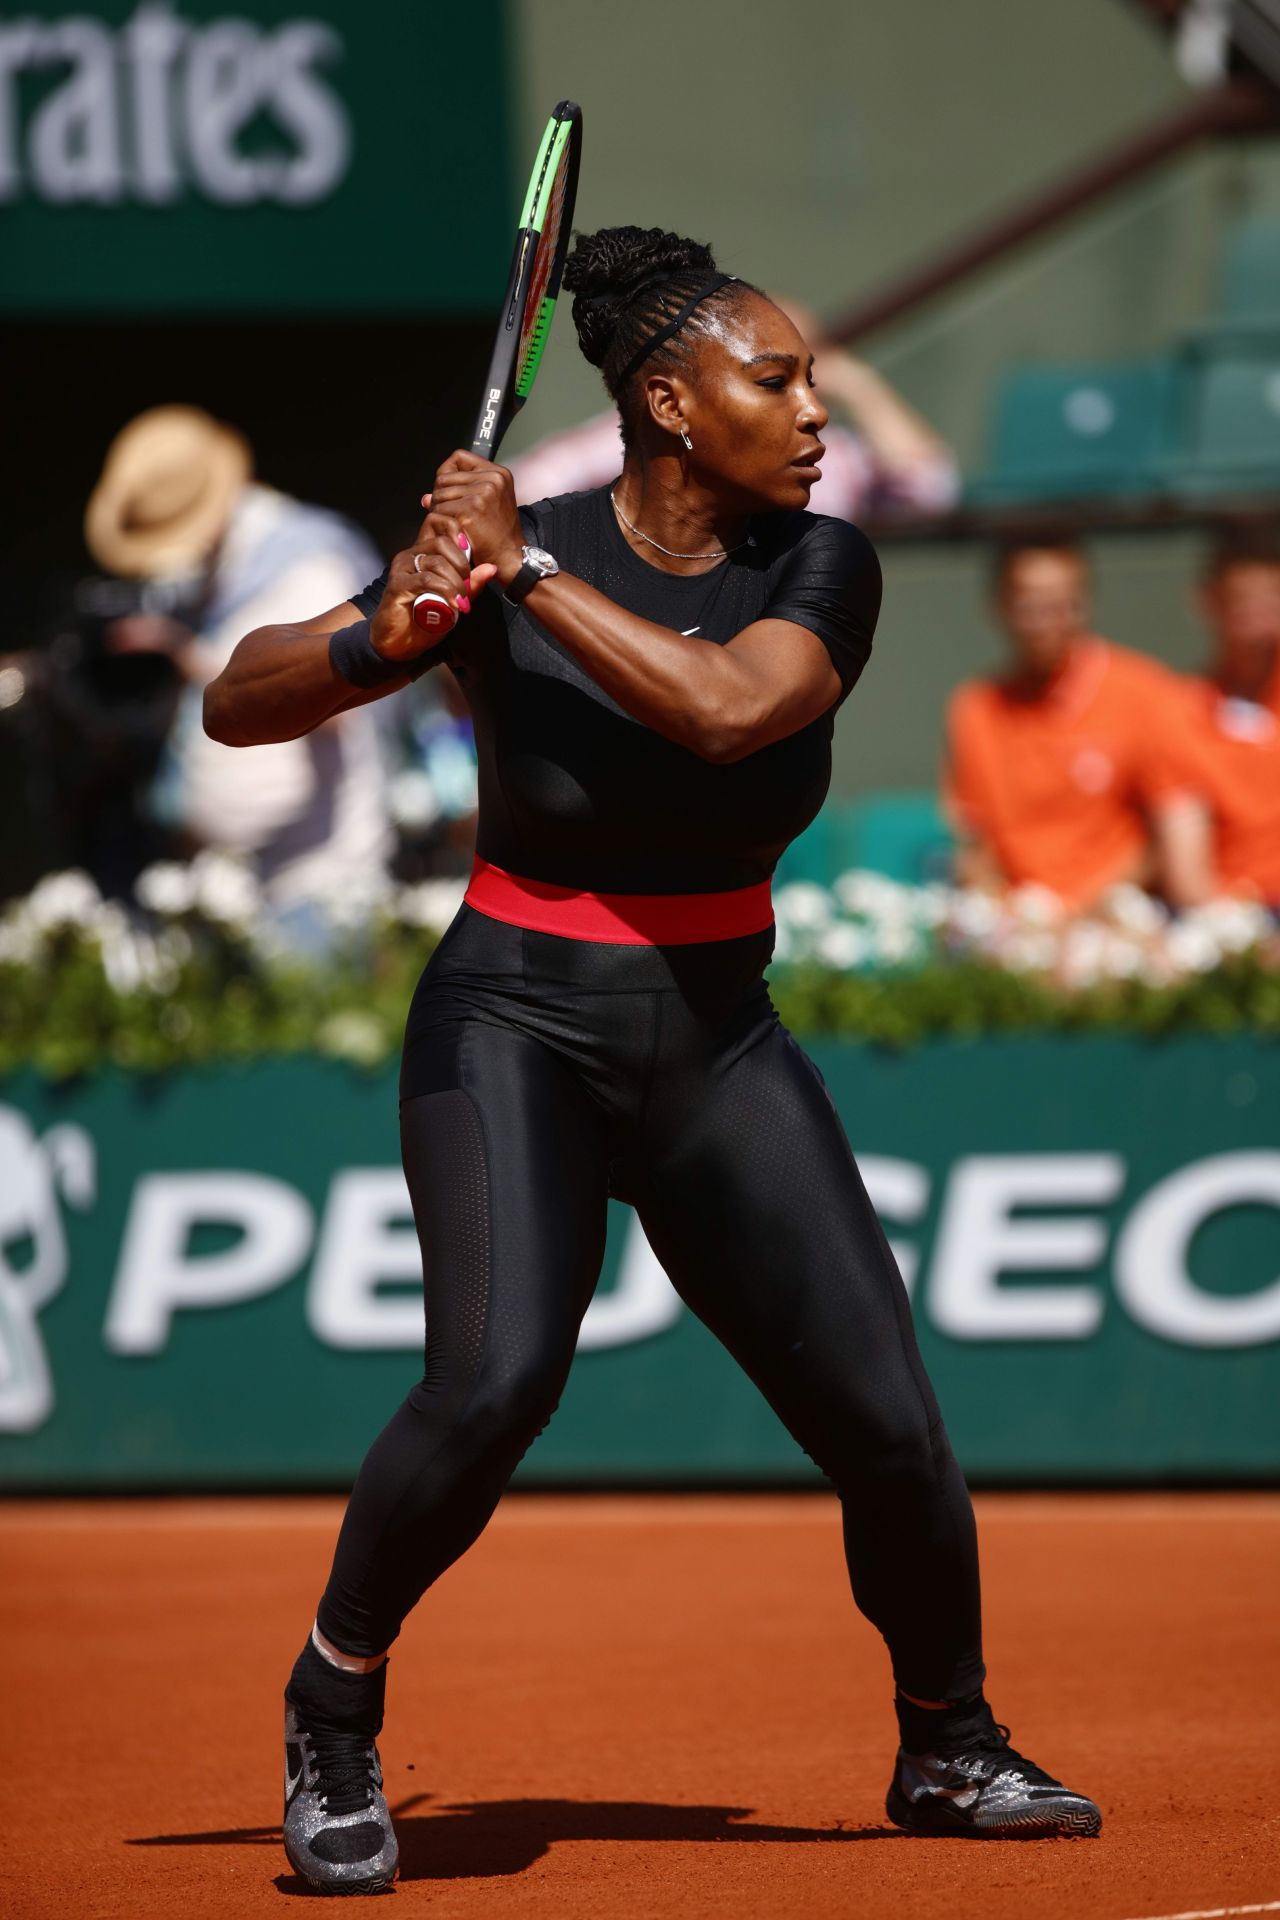 Suit Catwoman Serena Williams